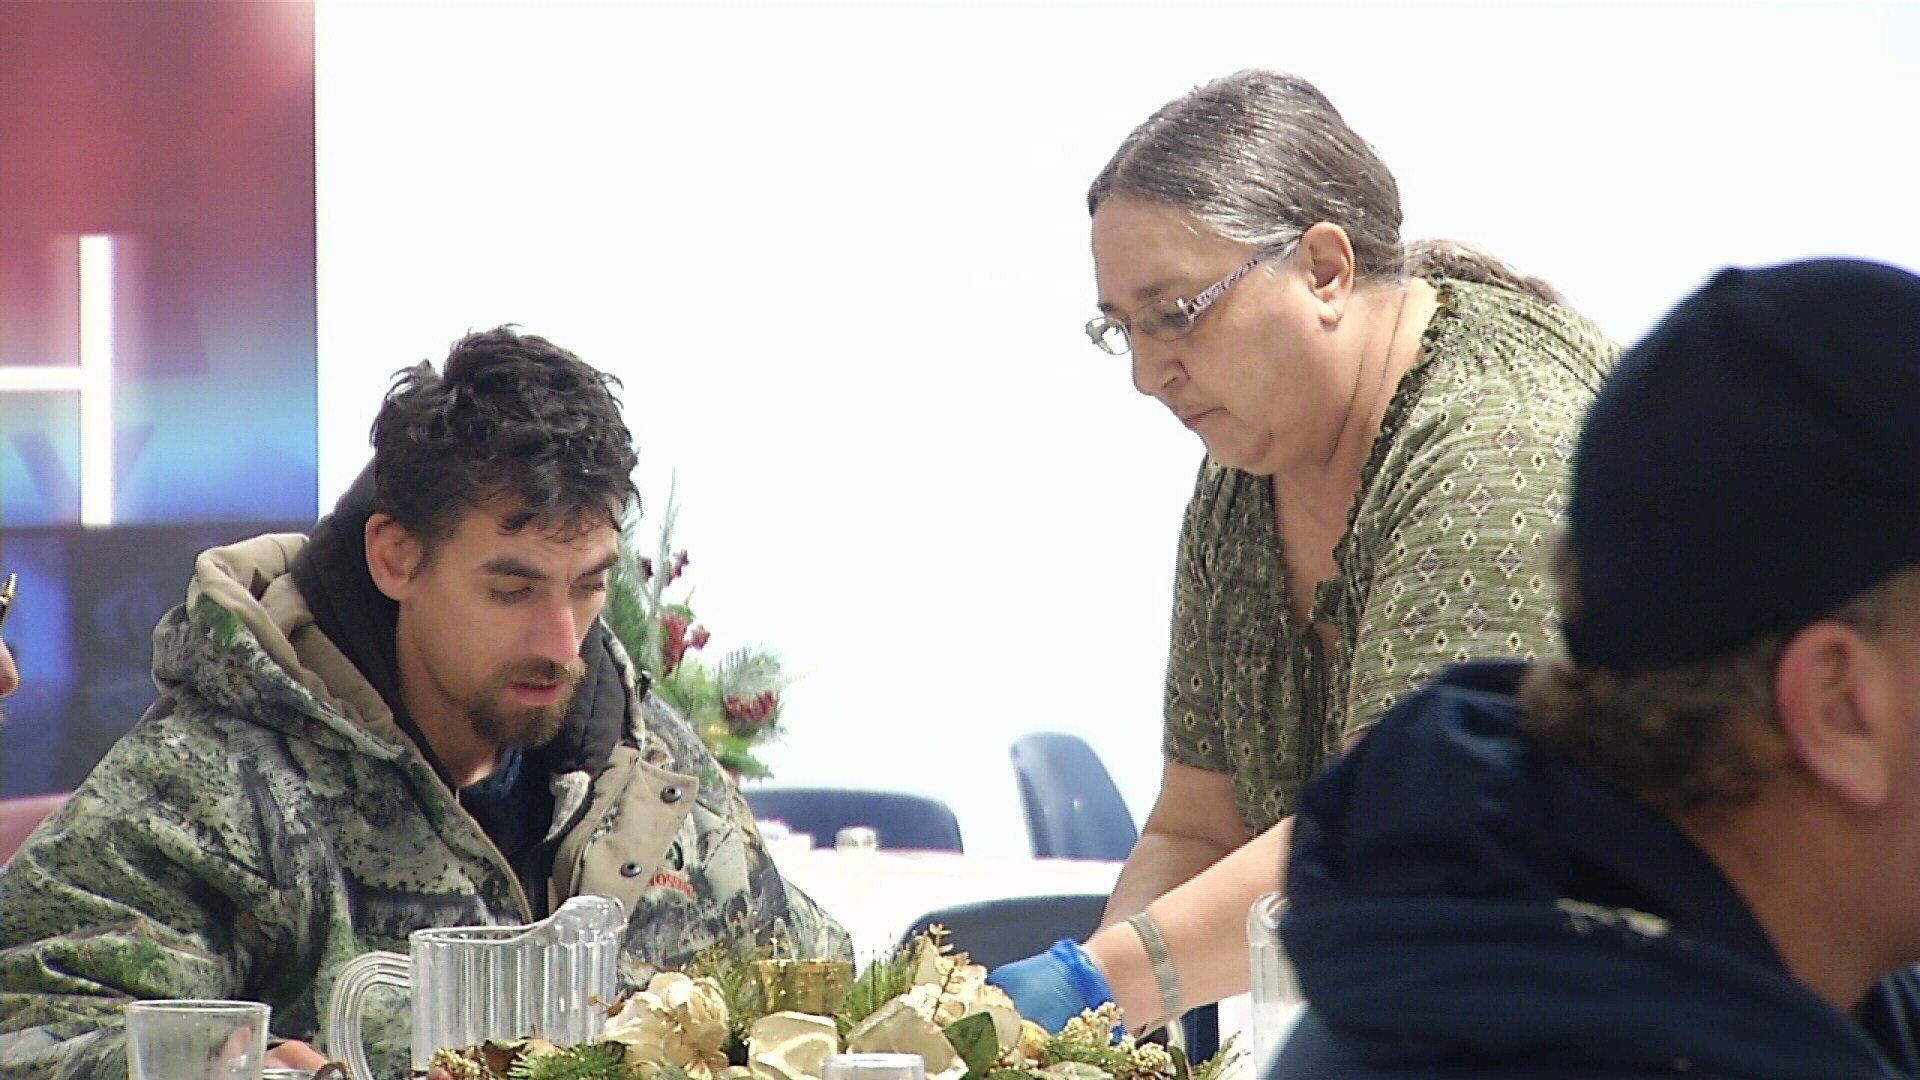 Different Faiths Come Together for the Gospel Mission Union Christmas Dinner